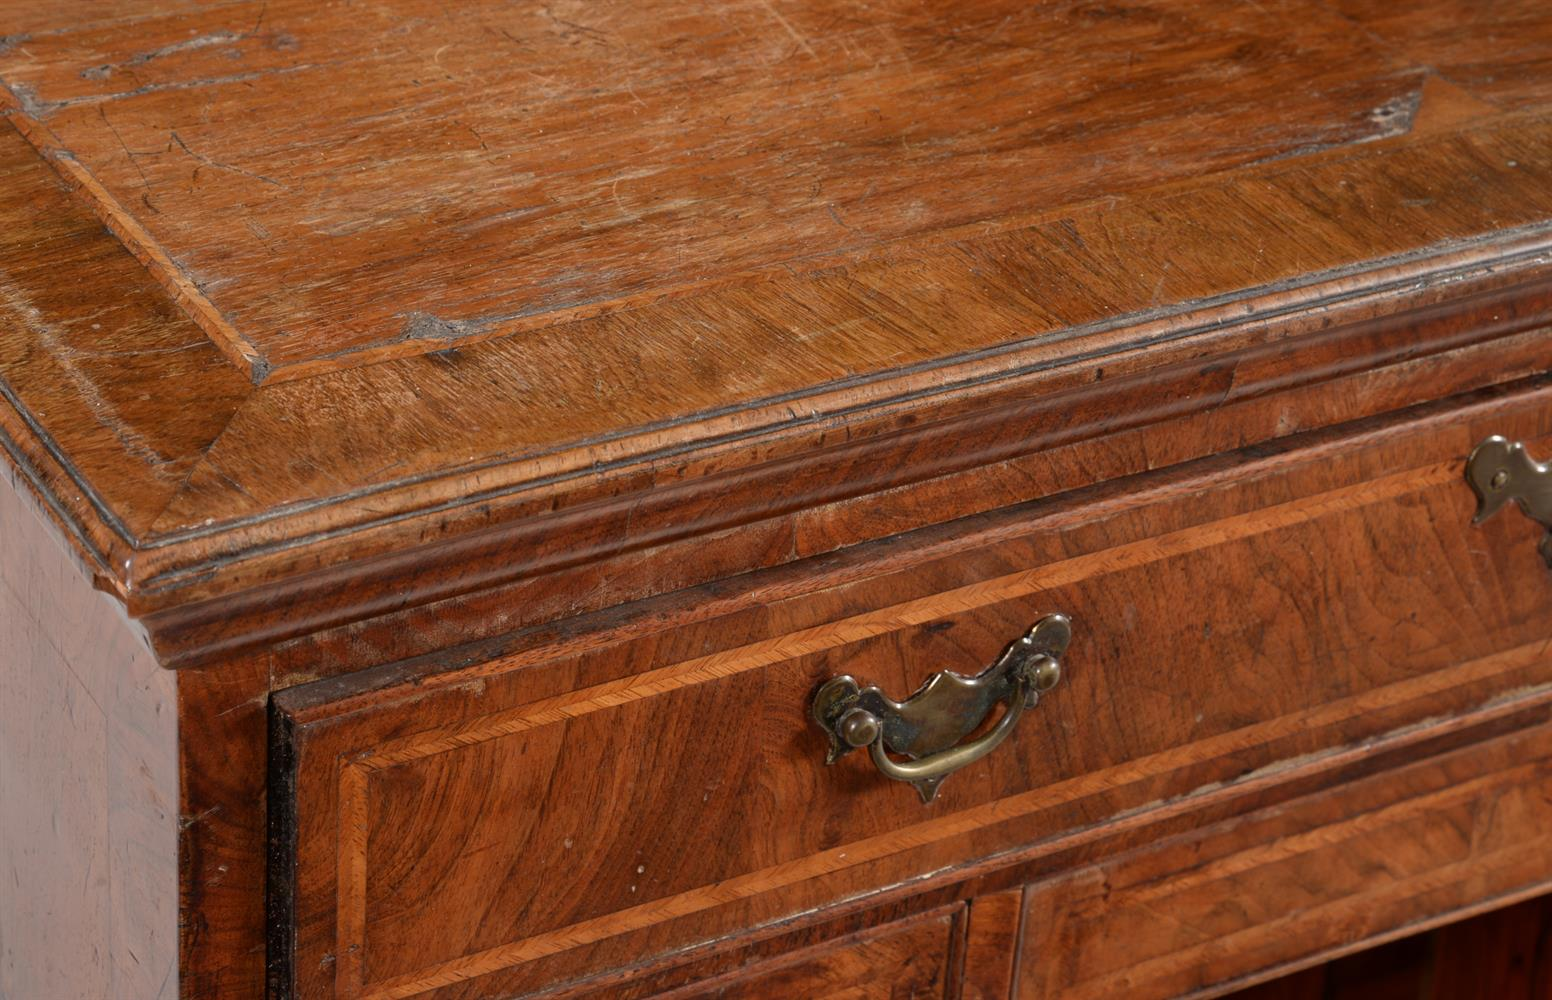 A George II walnut and feather banded kneehole desk - Image 2 of 2